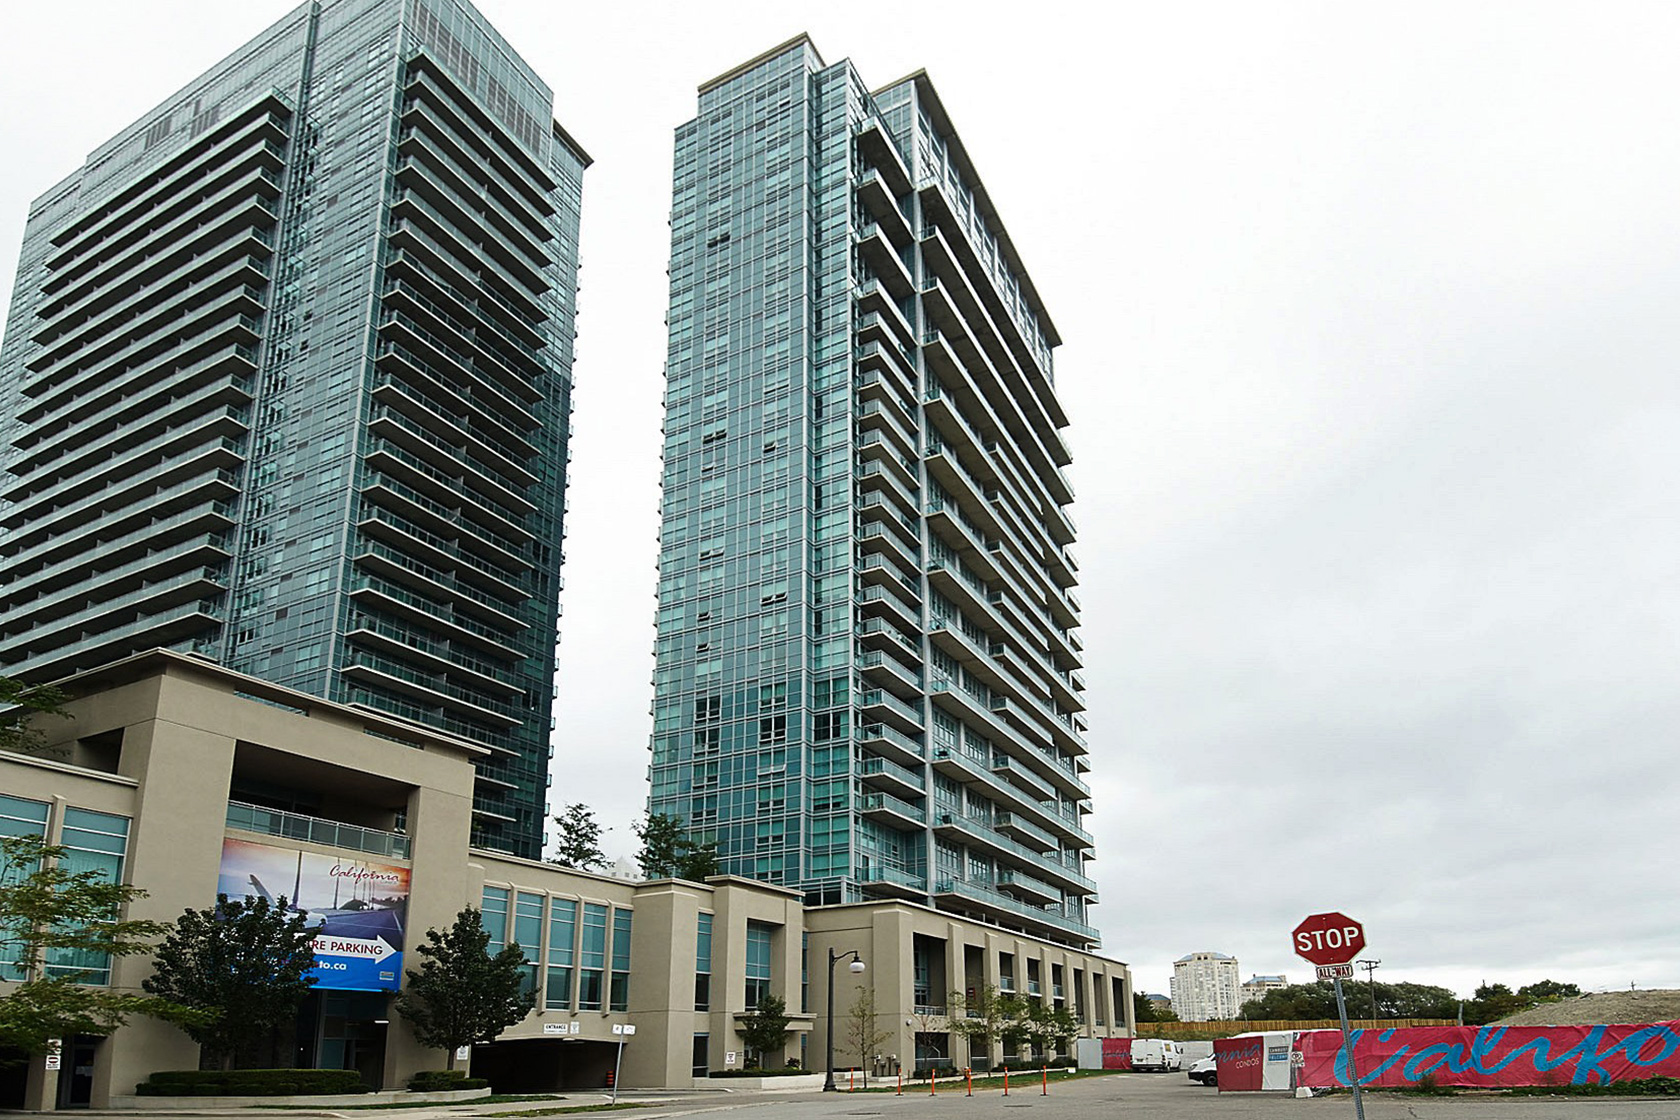 iloft iLoft at Mystic Pointe | Monthly Featured Condo | June 2017 155 legion rd n toronto etobicoke iloft ilofts condo park lawn condos